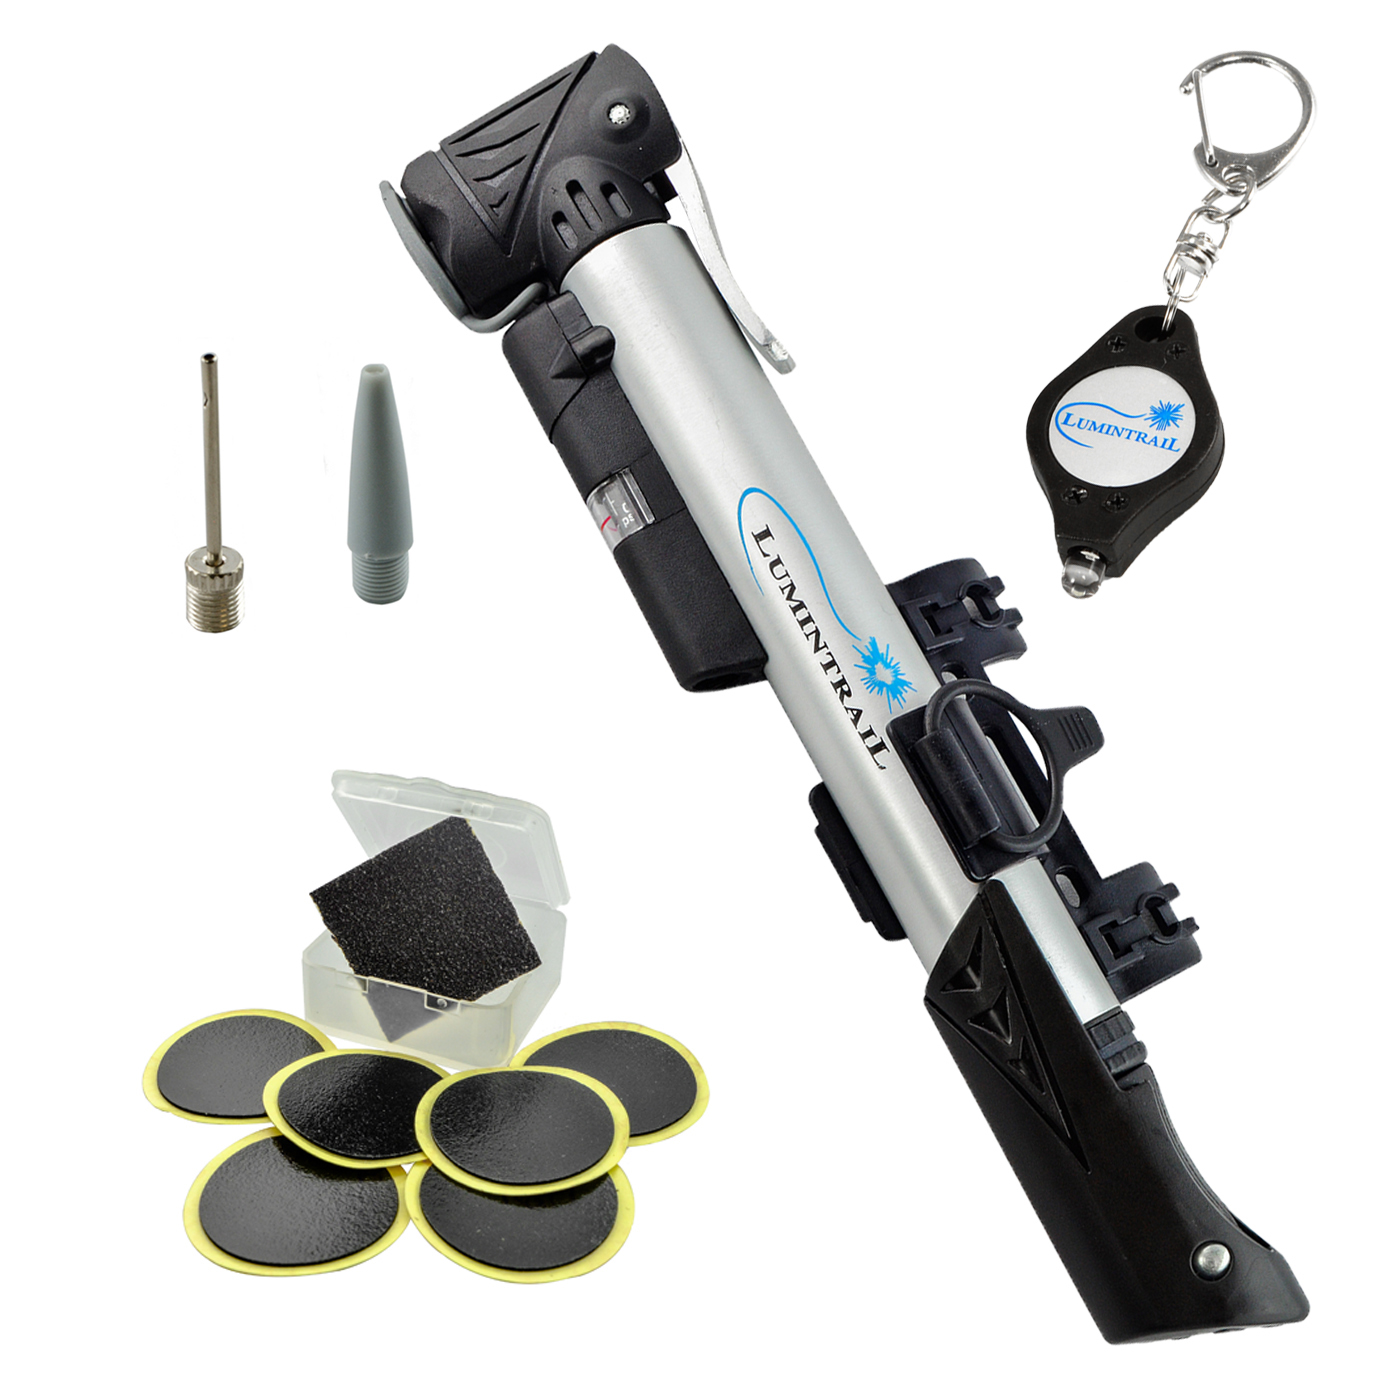 Lumintrail Telescoping Mini Bike Pump with Built-in Gauge plus BONUS Glueless Puncture Repair Kit and FREE Keychain Light - Presta & Schrader Compatible Frame Mount 120 PSI